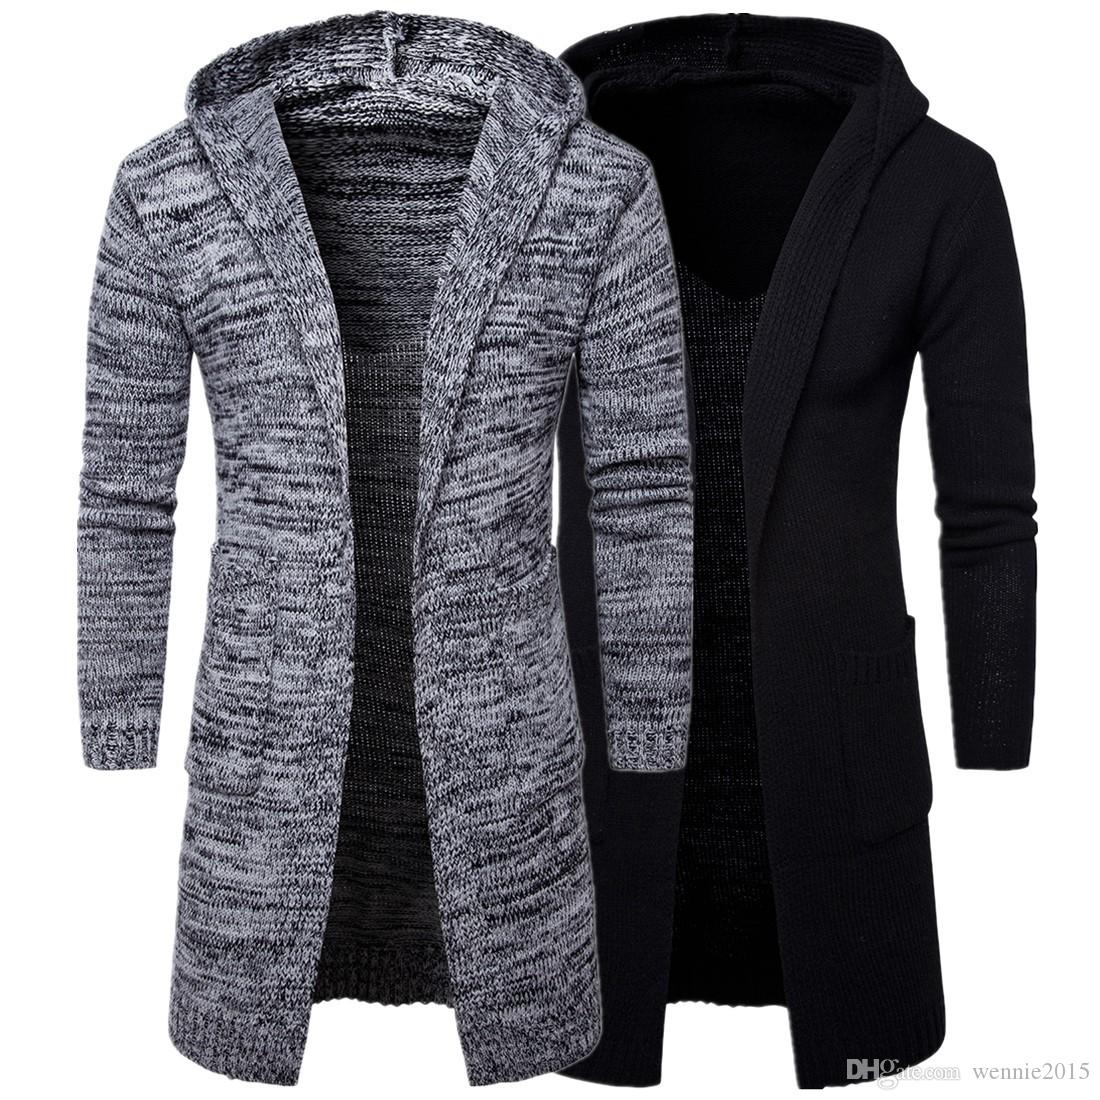 a15ad95f6934 2019 Hot Sell Men Outerwear Coat Trench Coat Cardigan Sweater Knit Sweaters  Black And Grey Size M 2XL From Wennie2015